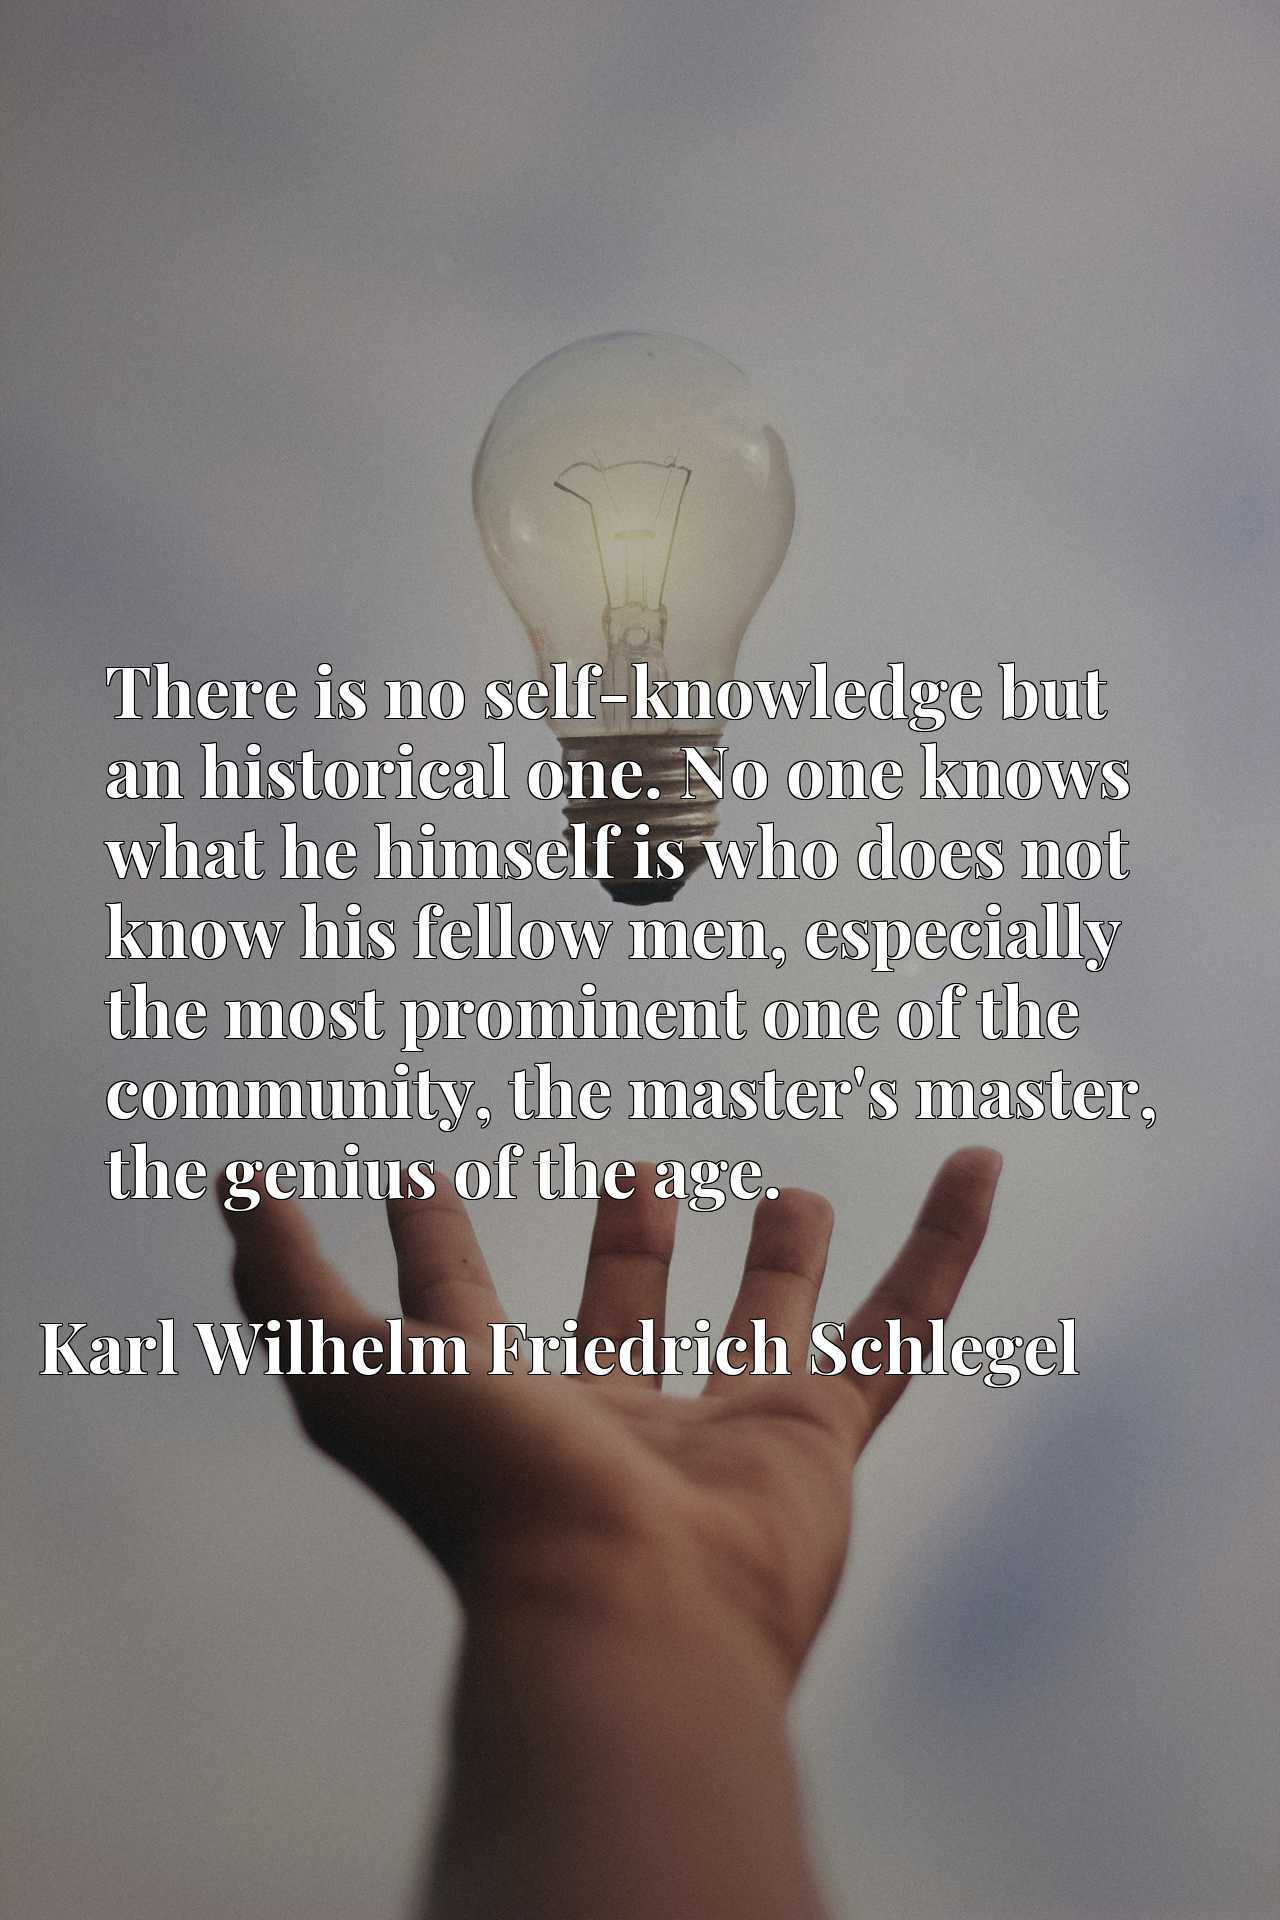 There is no self-knowledge but an historical one. No one knows what he himself is who does not know his fellow men, especially the most prominent one of the community, the master's master, the genius of the age.